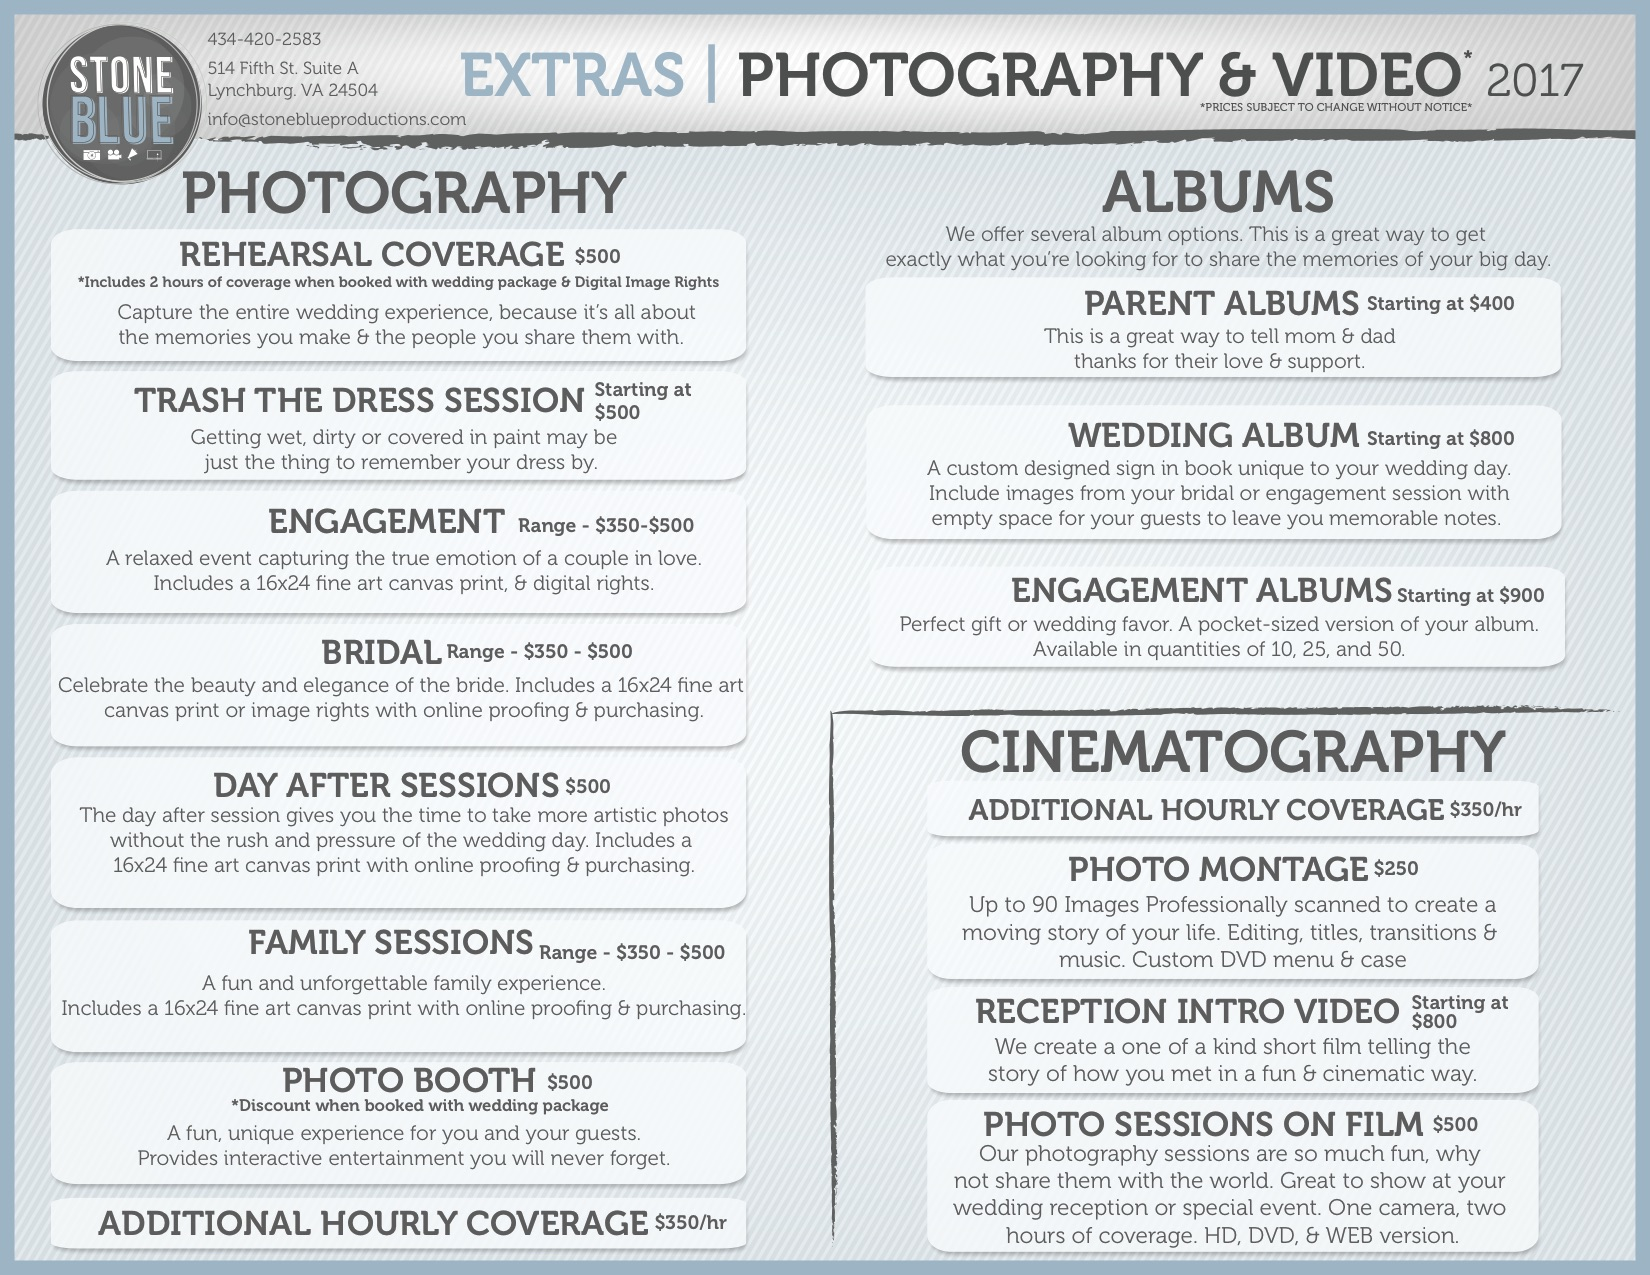 Photo Video Extras 2017 Photography Packages